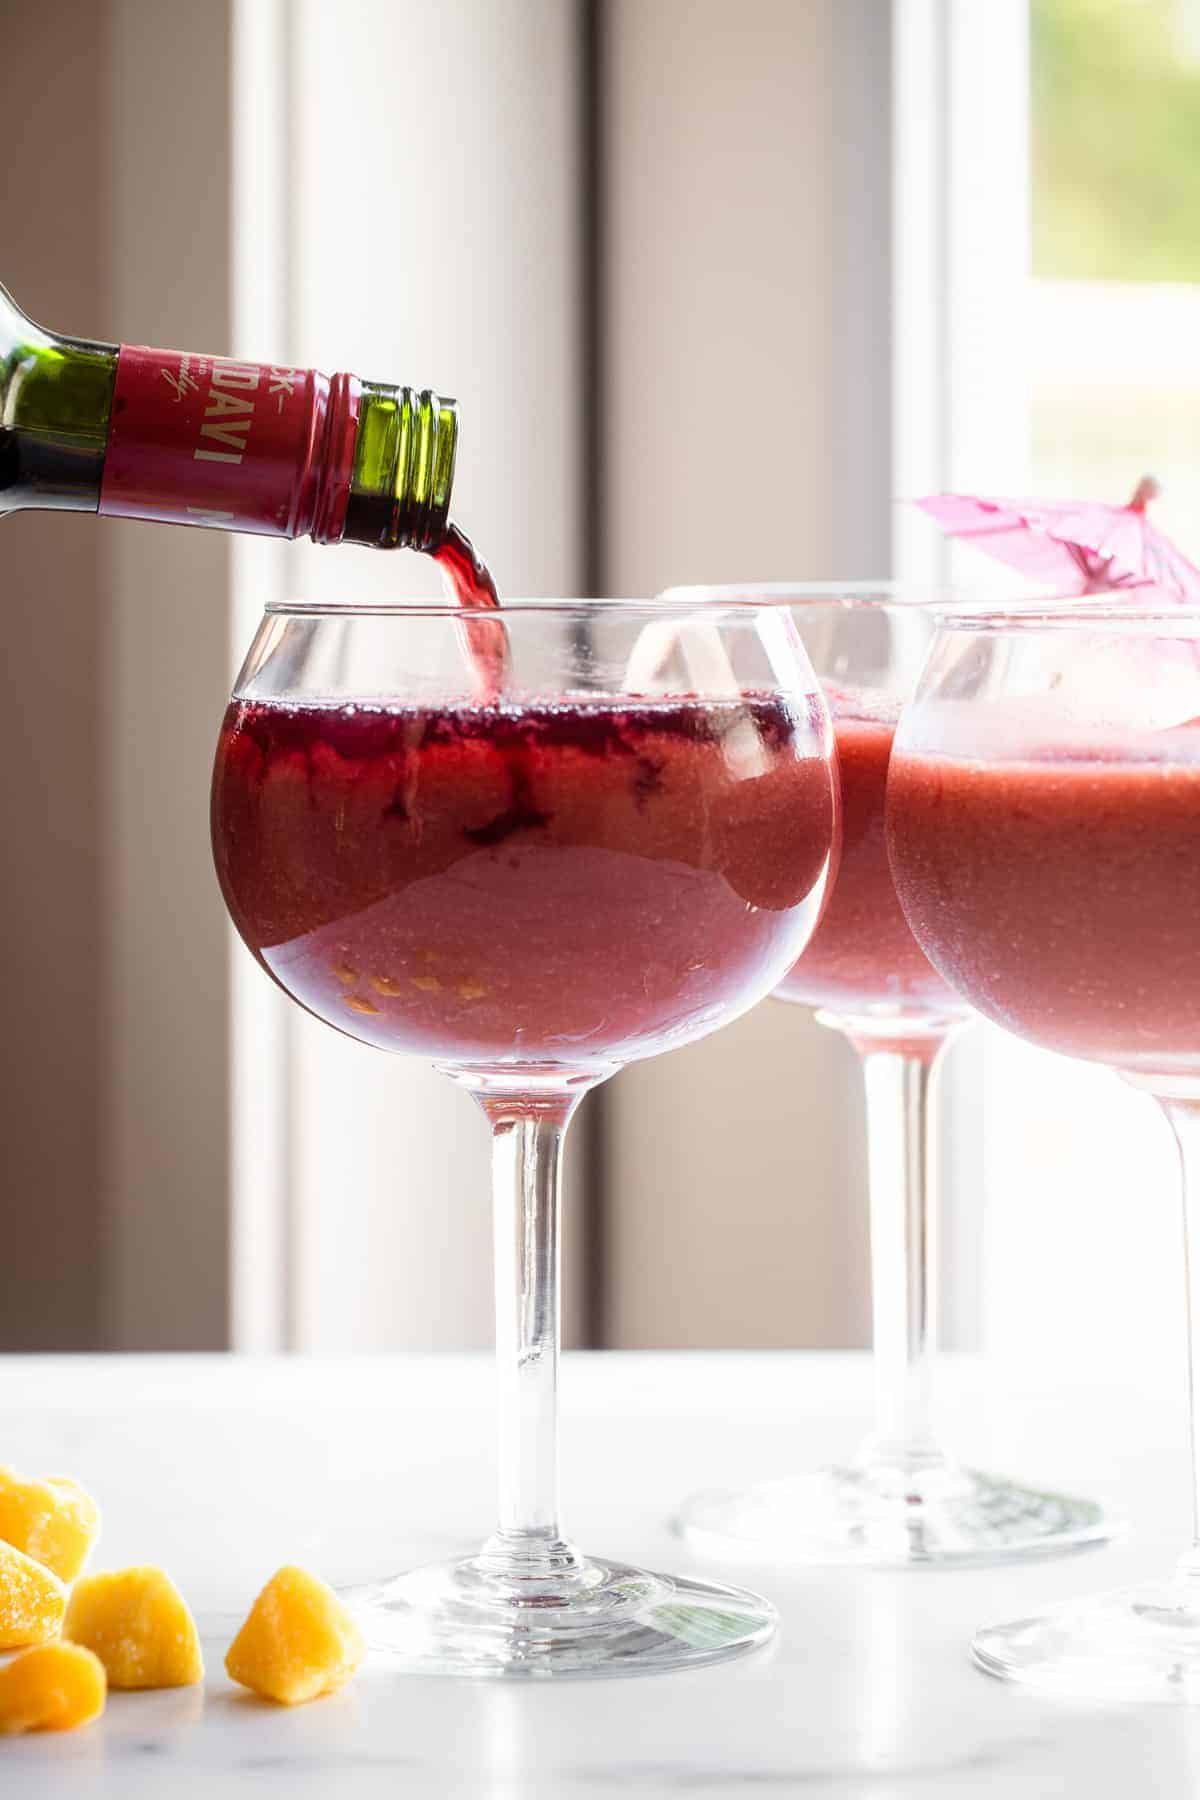 frozen sangria recipe in a glass with wine being poured in